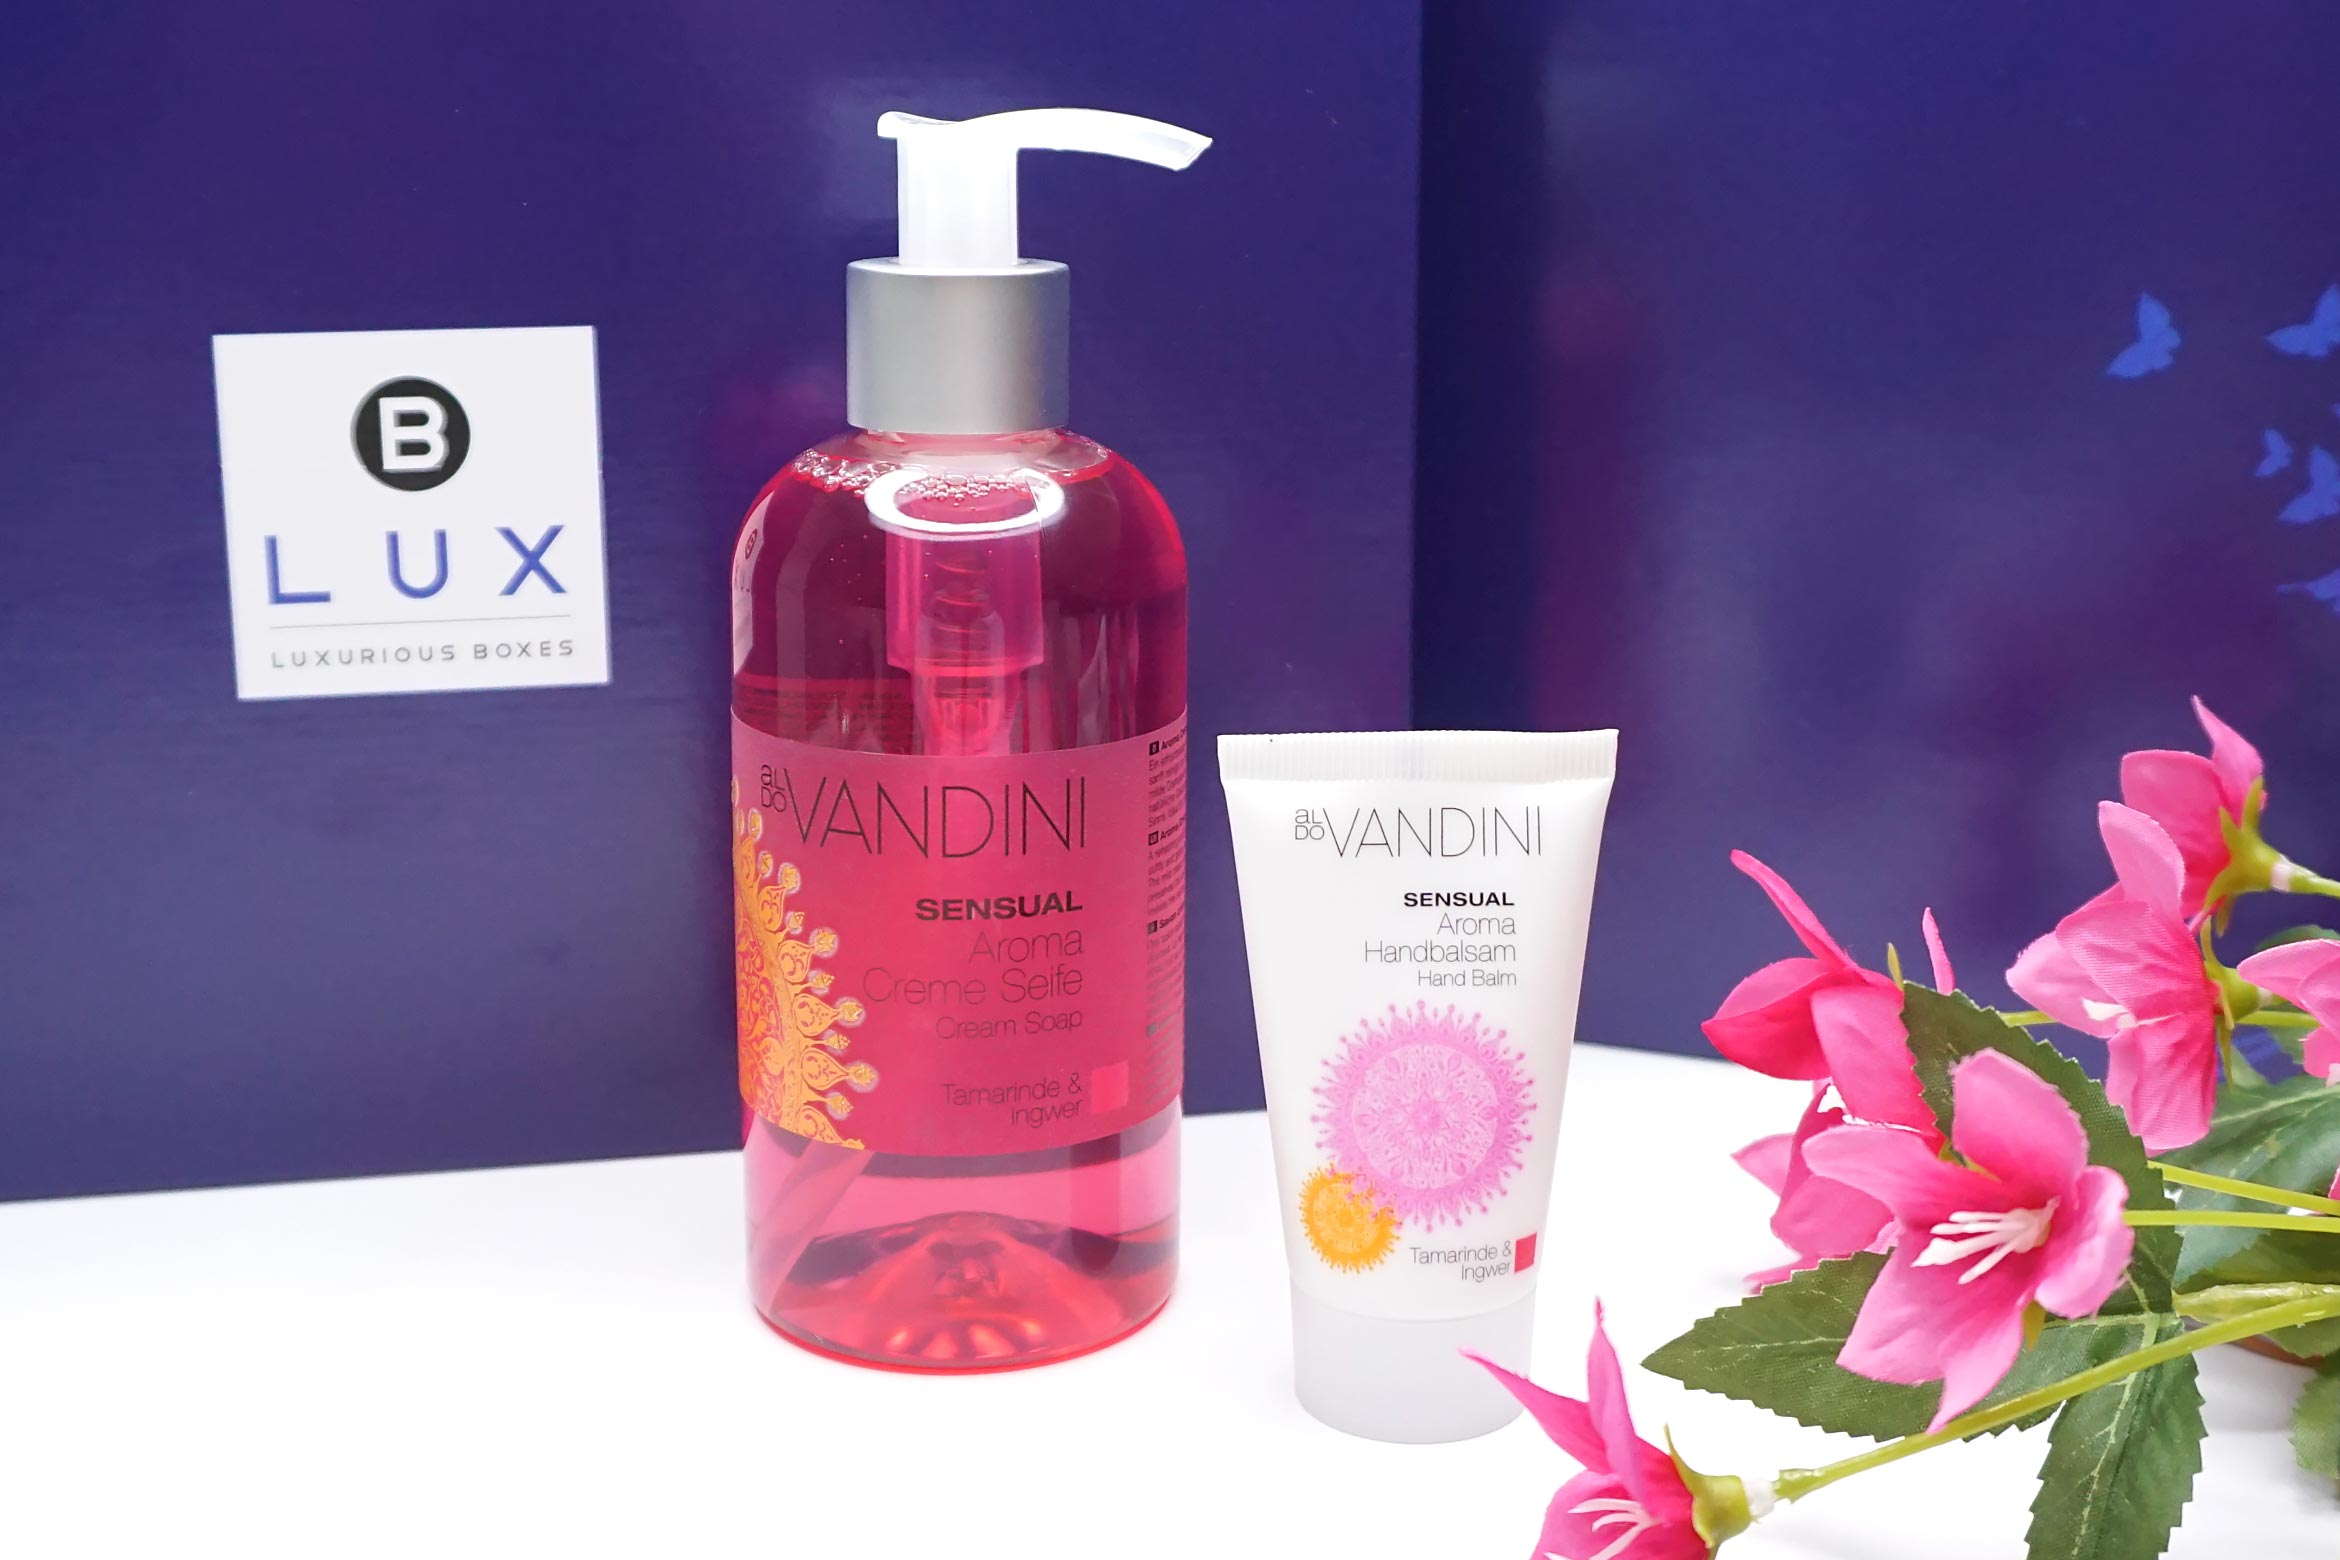 BLUX-box-review-maart-april-2019-Aldo-vandini-sensual